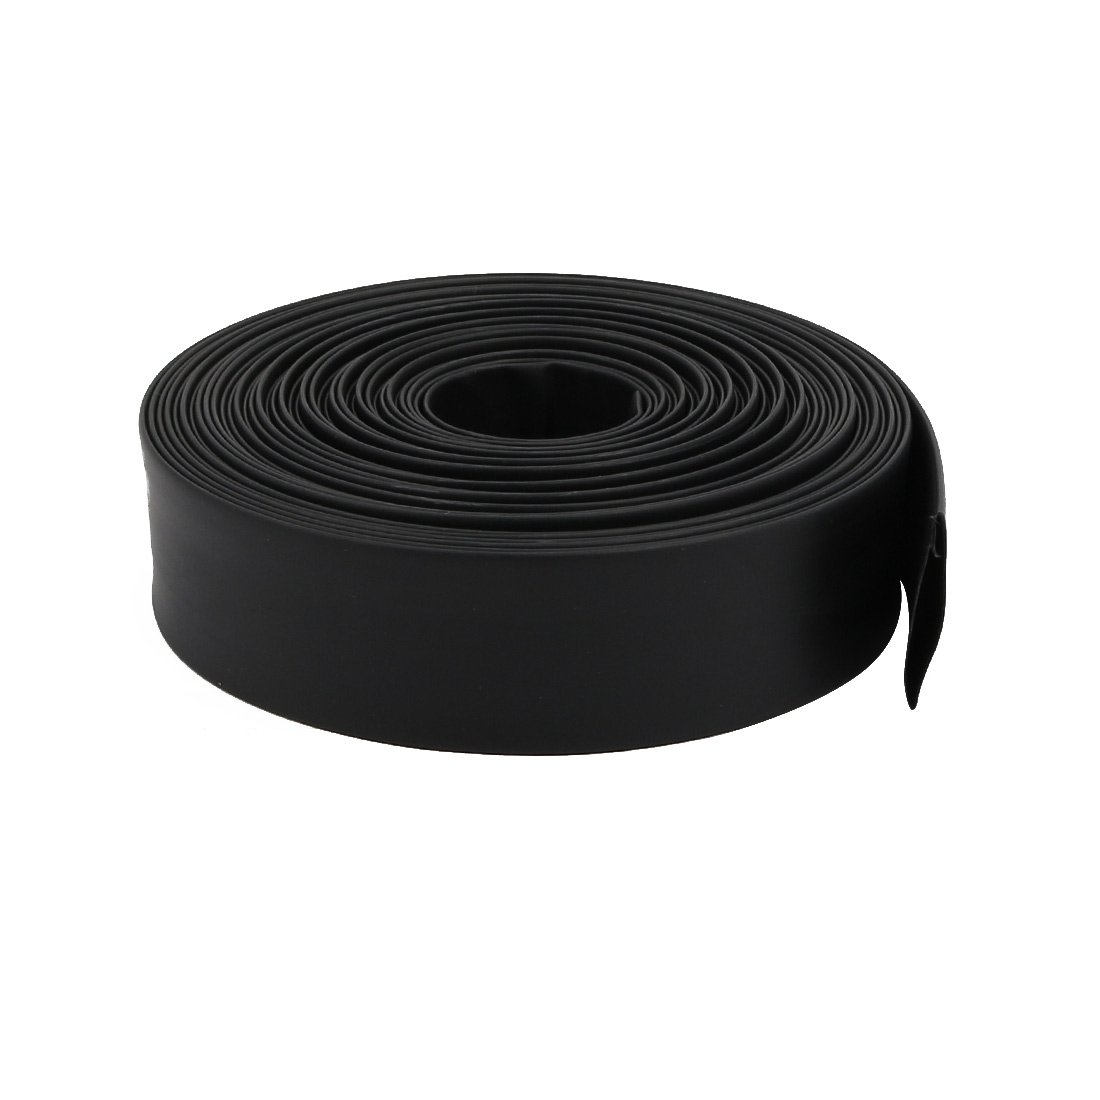 uxcell 10M Length 0.71in Inner Dia Polyolefin Heat Shrinkable Tube Sleeving Black